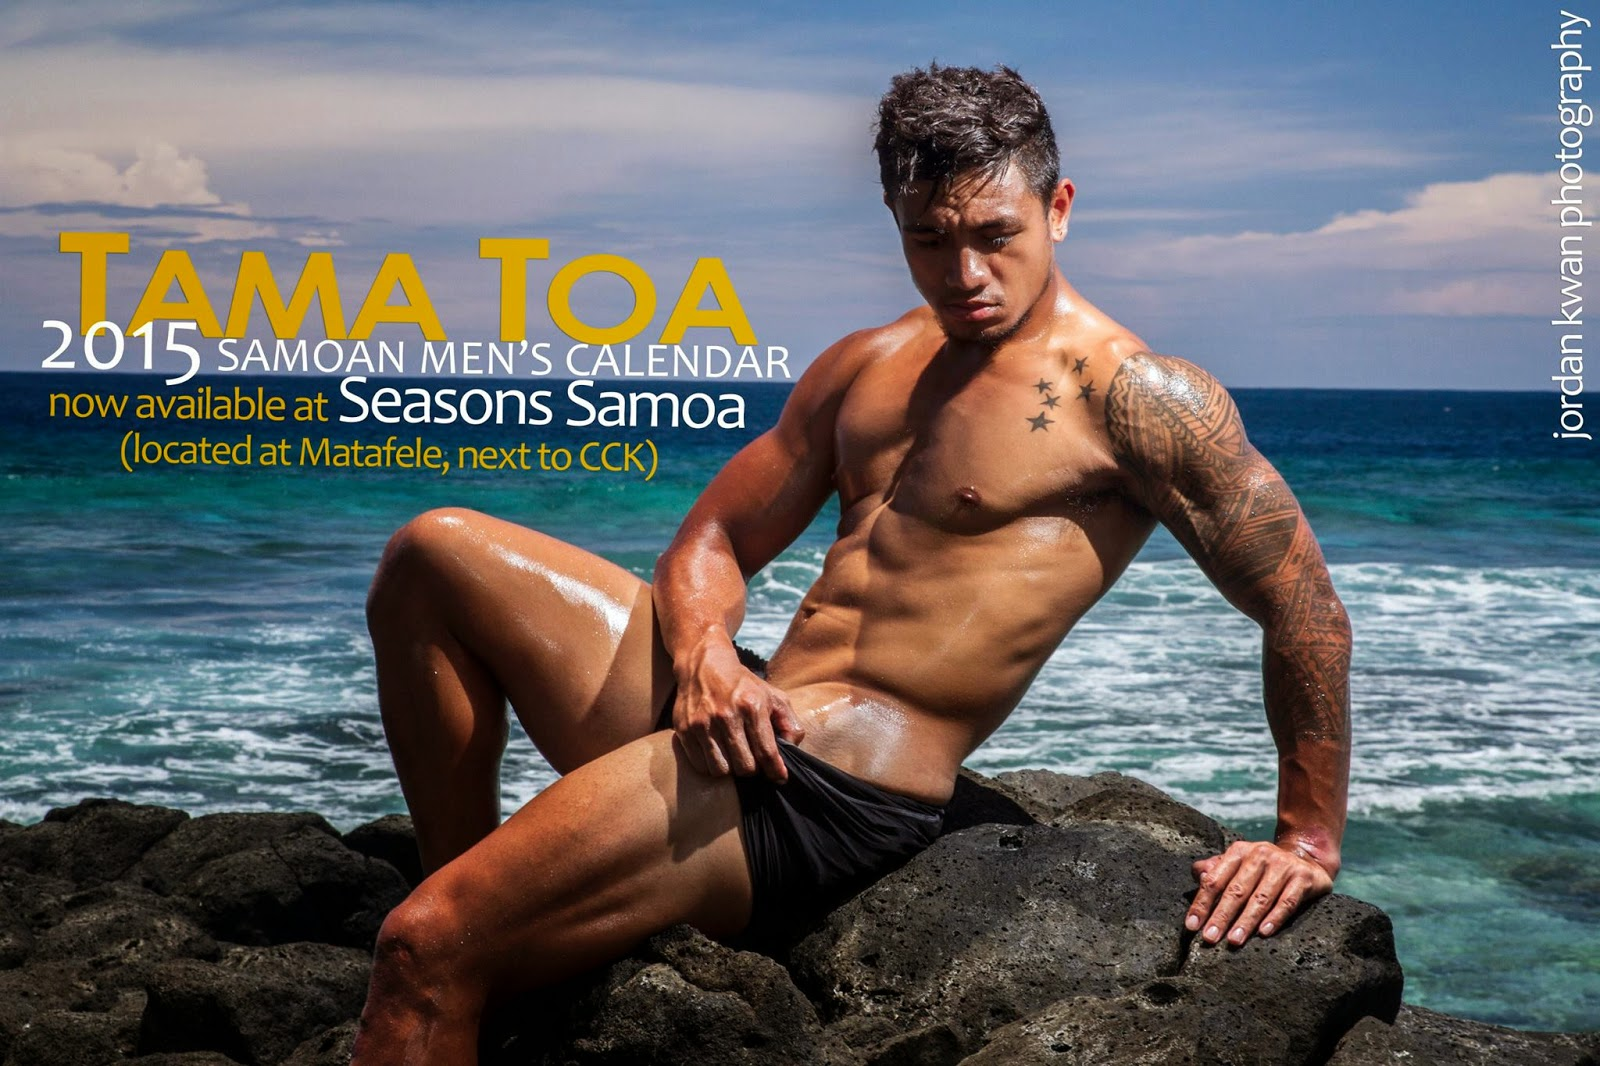 Fale Iosefa | Hot 500 Polynesian and Pacific Island Men